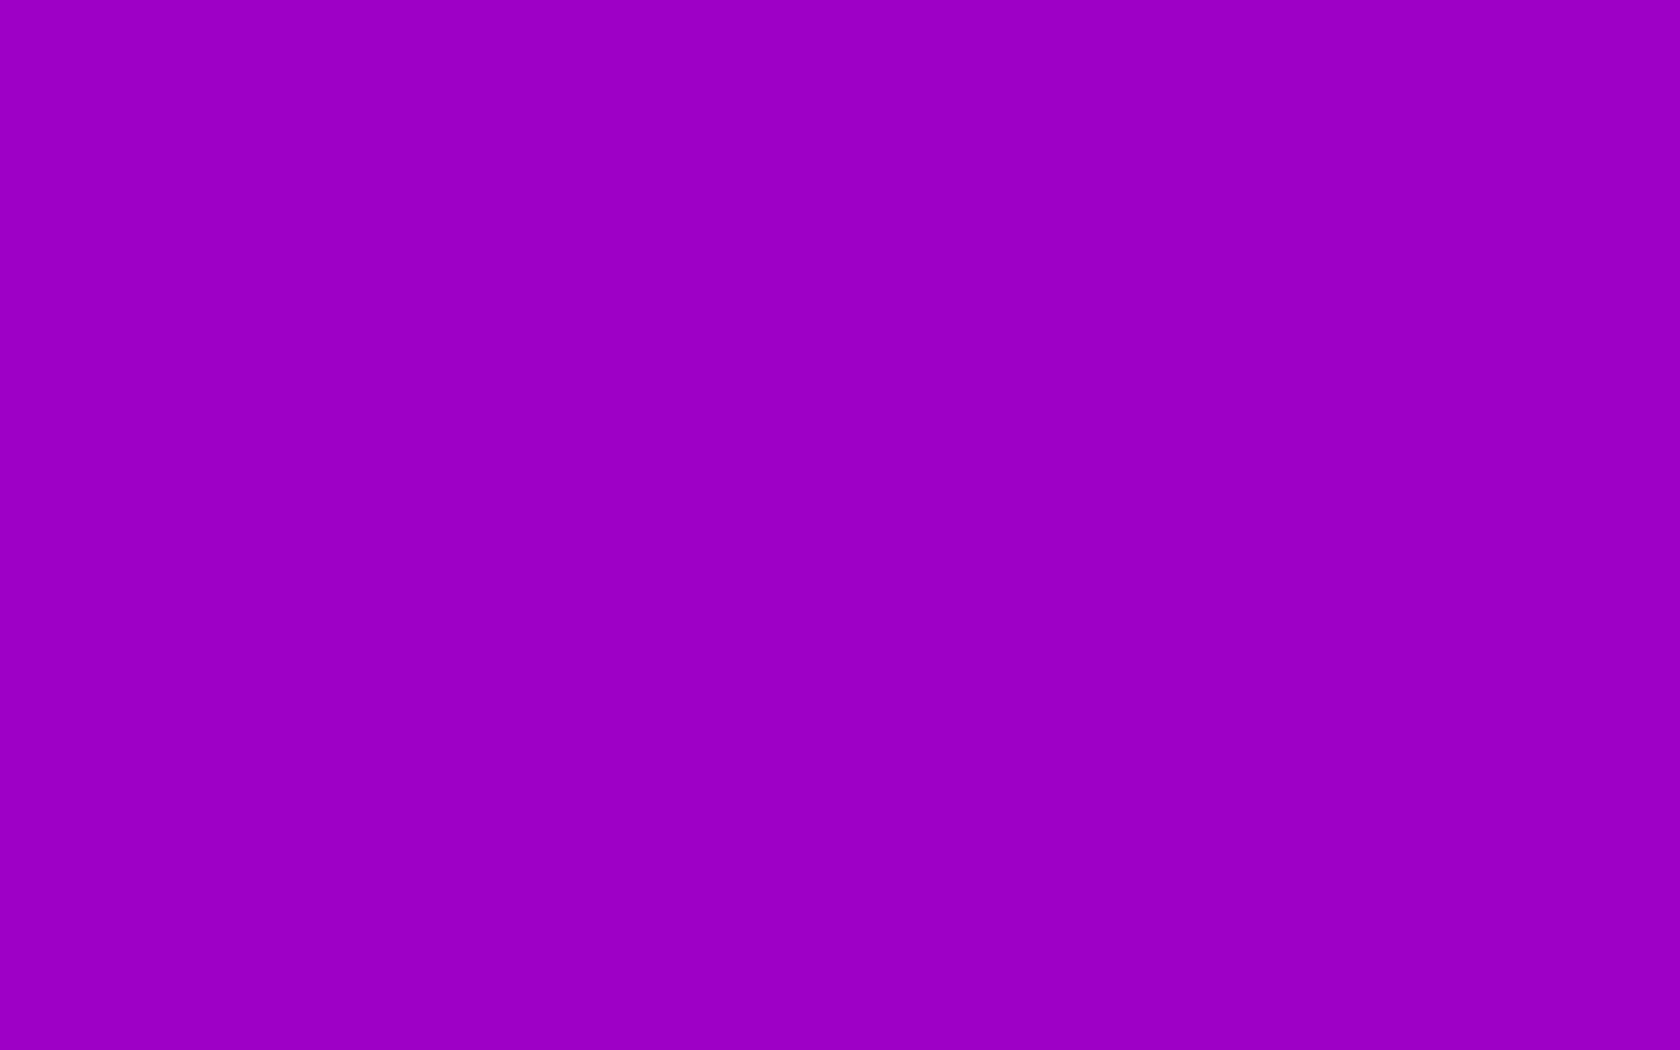 1680x1050 Purple Munsell Solid Color Background